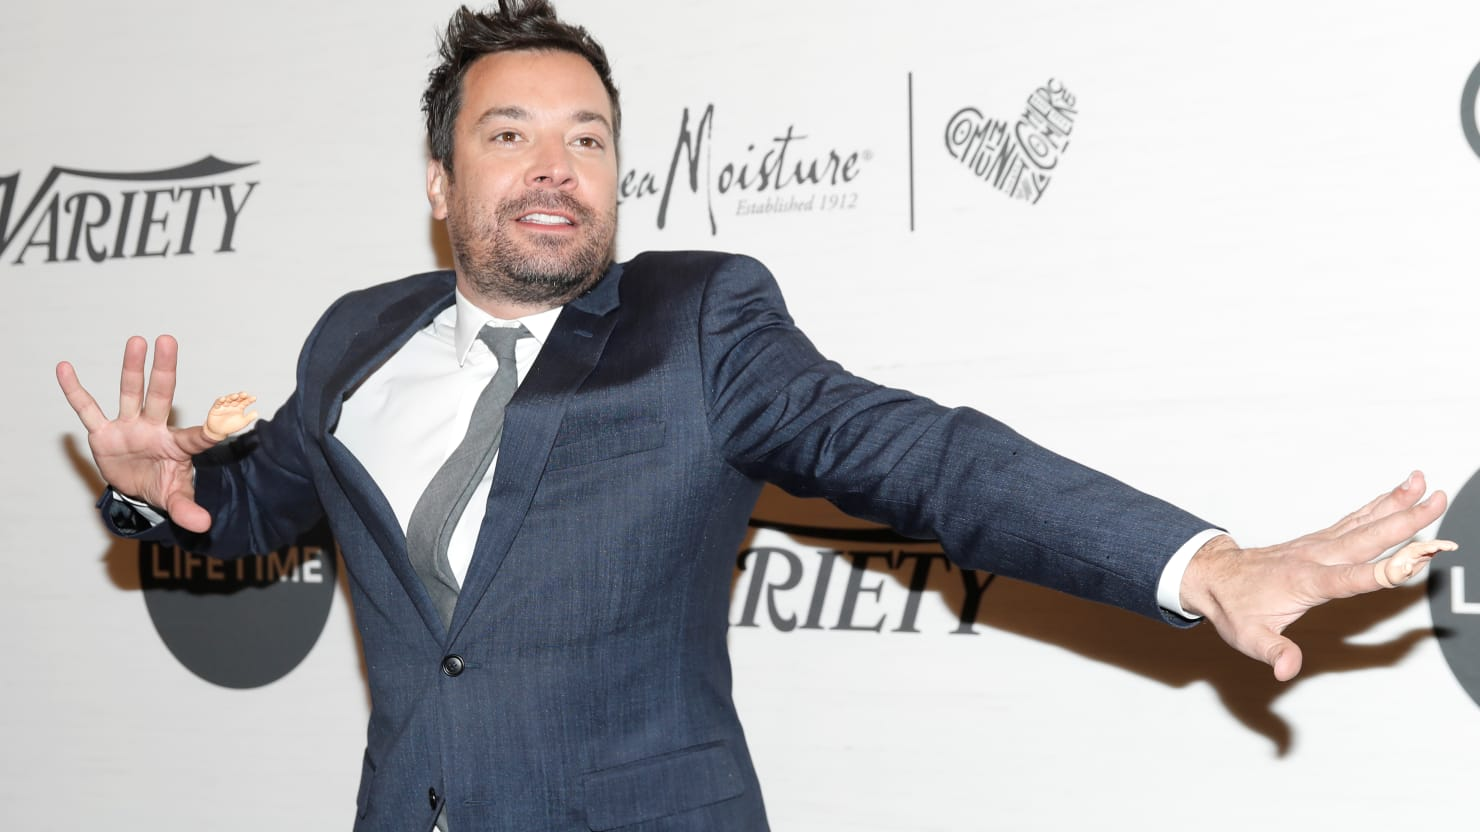 Jimmy Fallon's 'Tonight Show' Reportedly in Trouble as Ratings Plummet